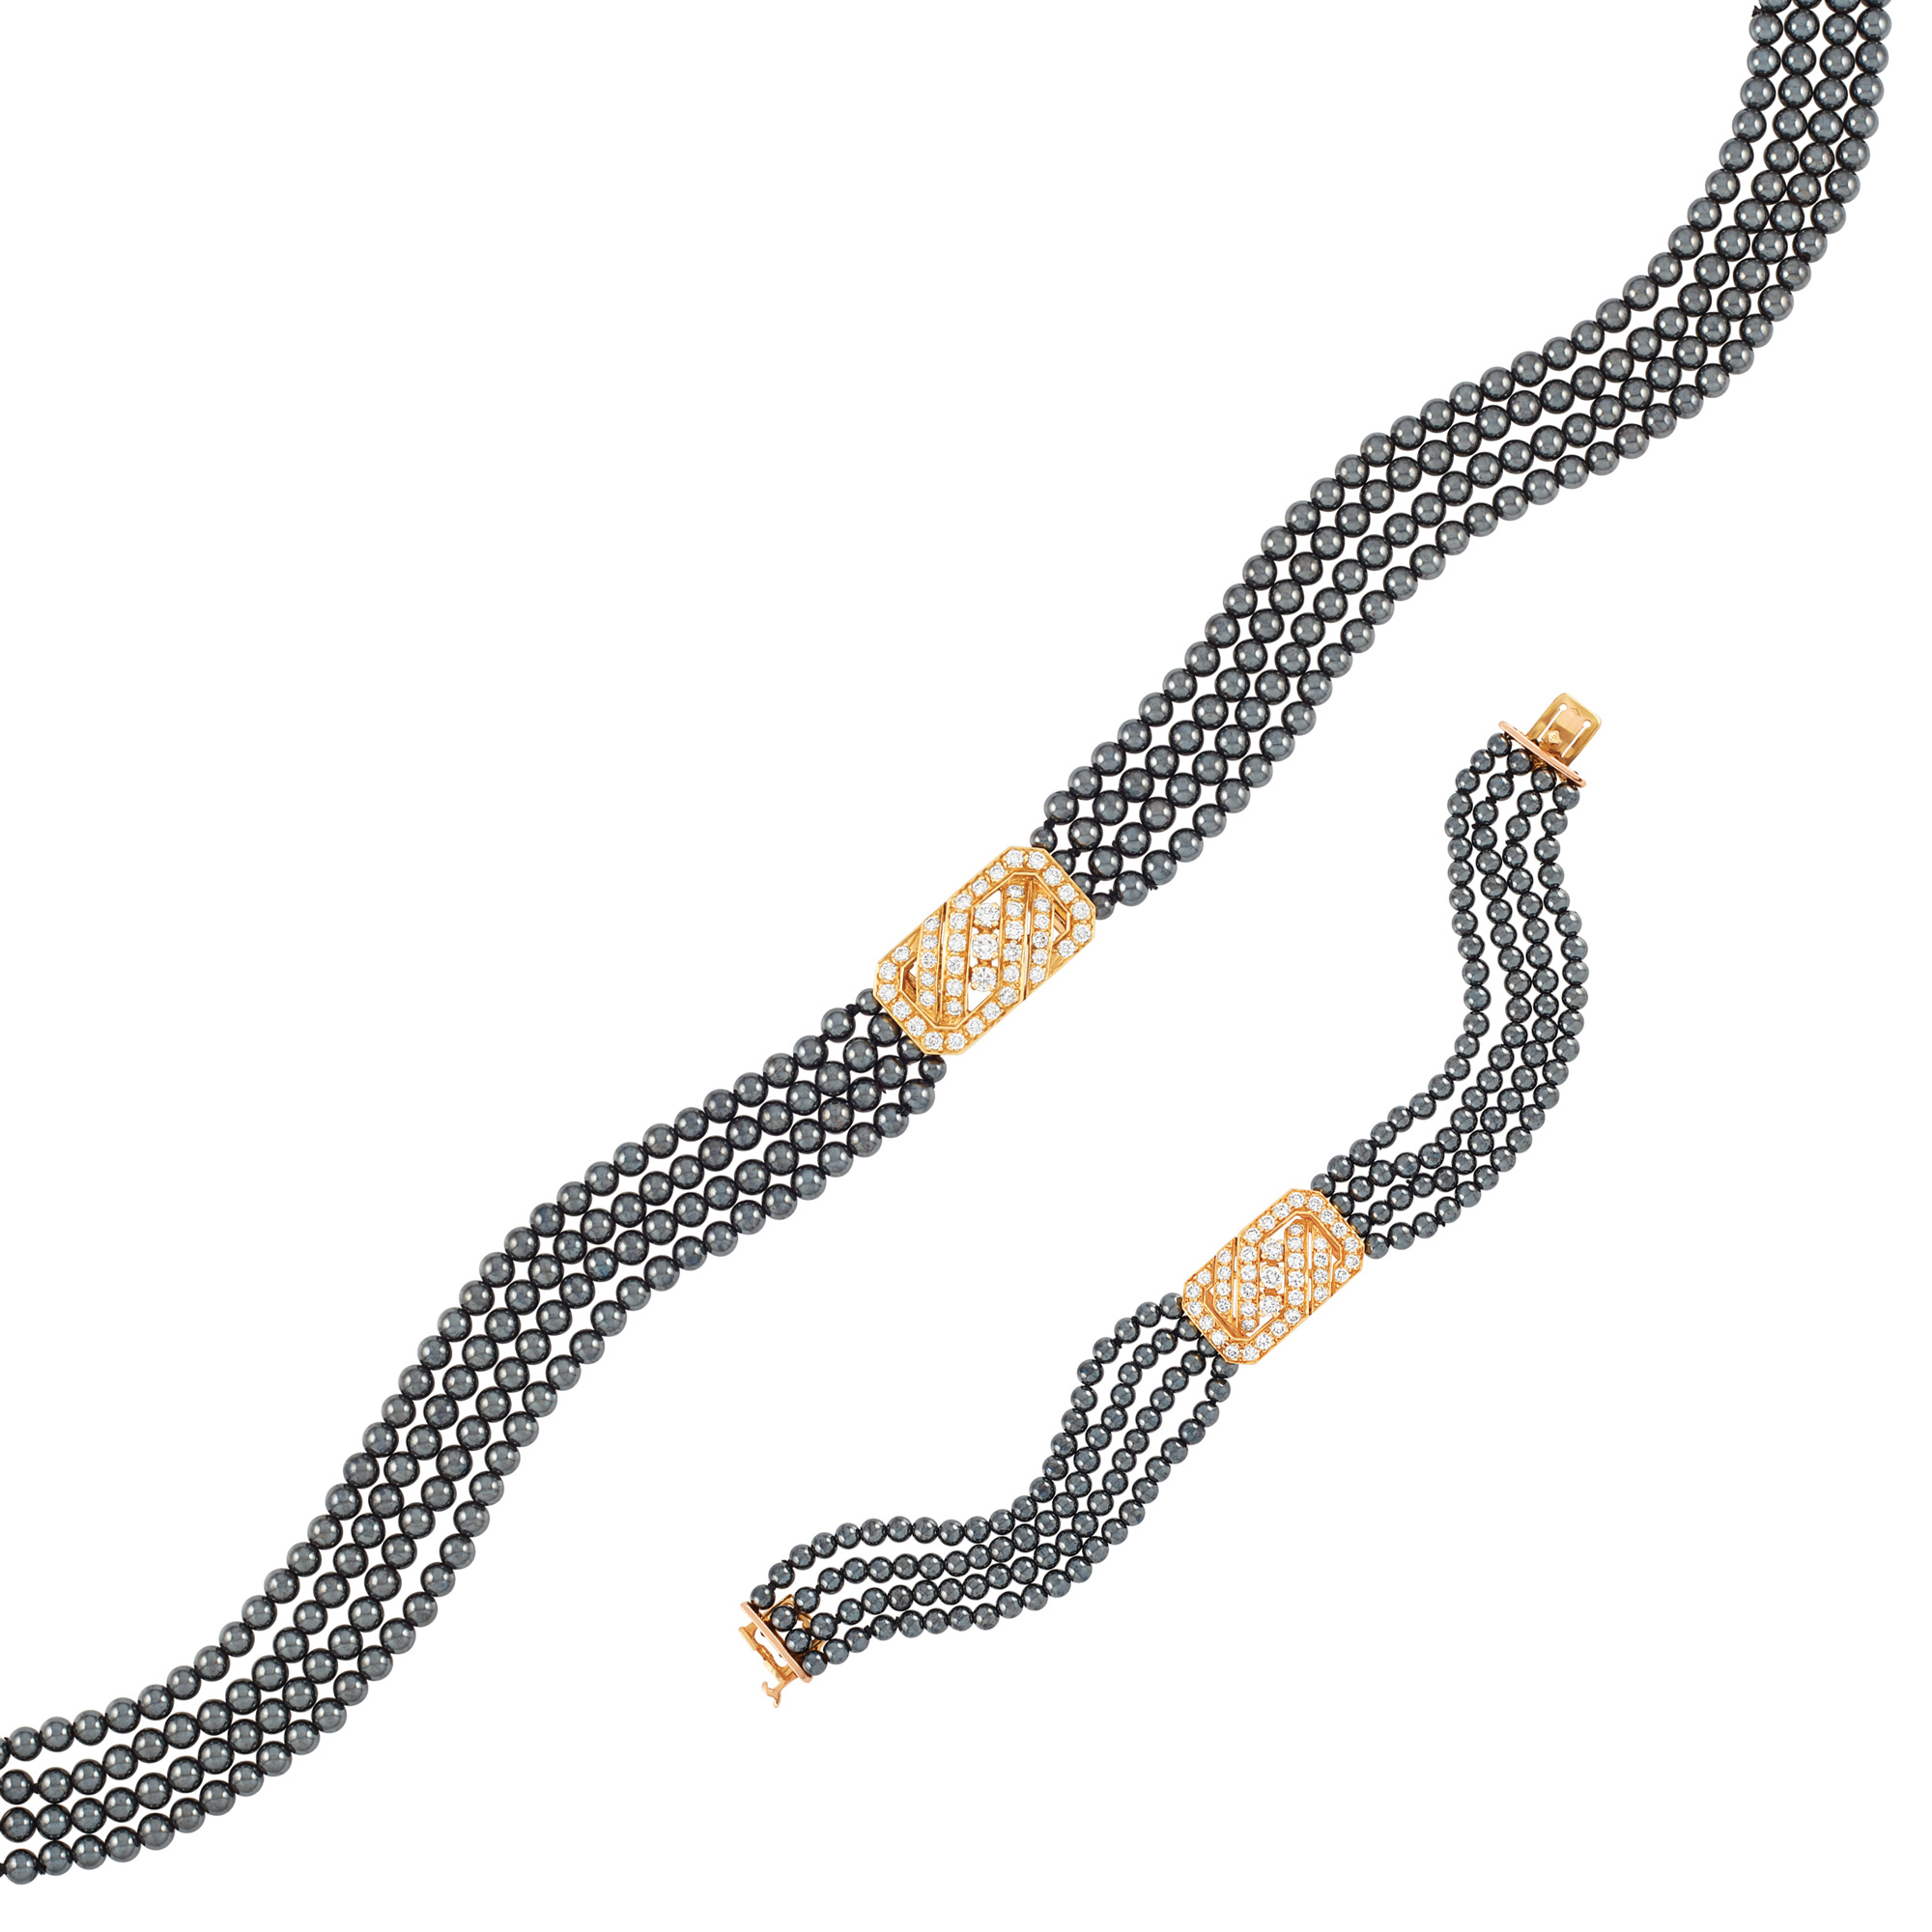 Lot image - Gold, Diamond and Hematite Necklace and Bracelet, Van Cleef & Arpels